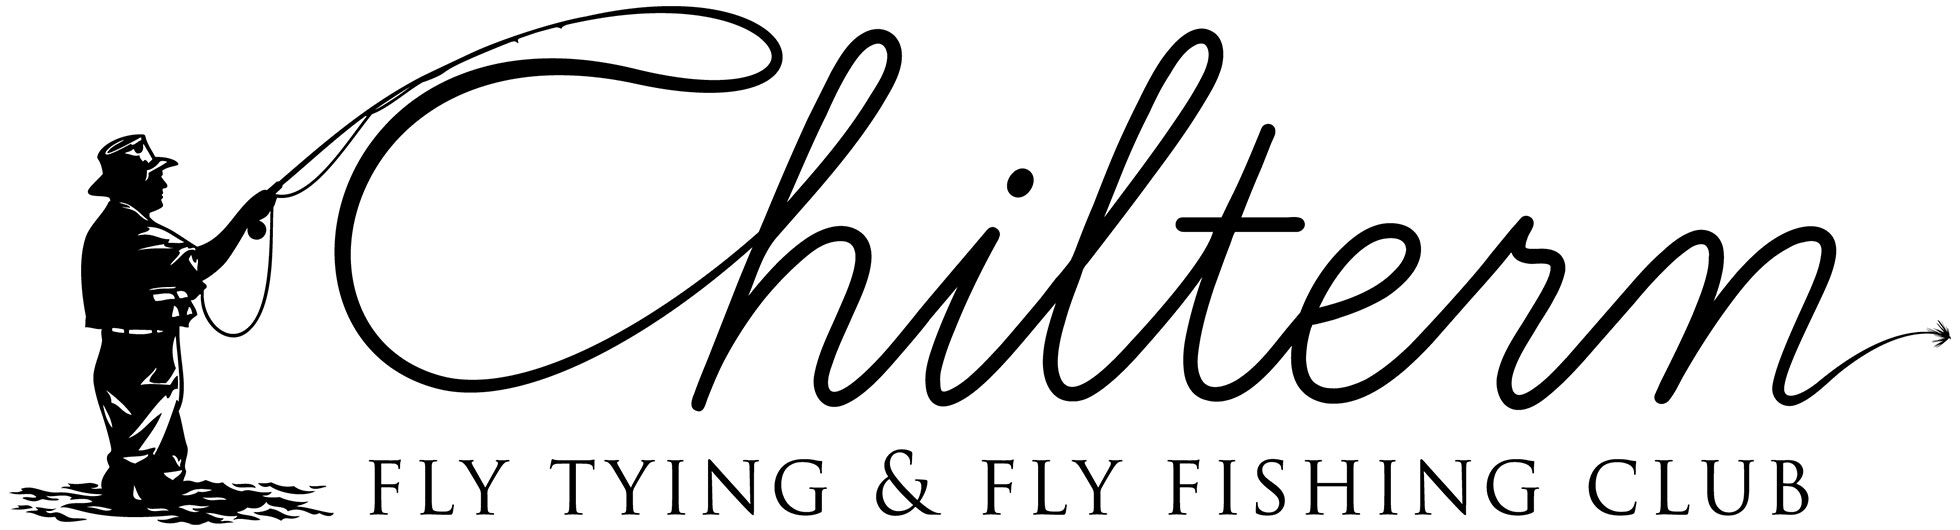 Chiltern Fly Tying & Fly Fishing Club